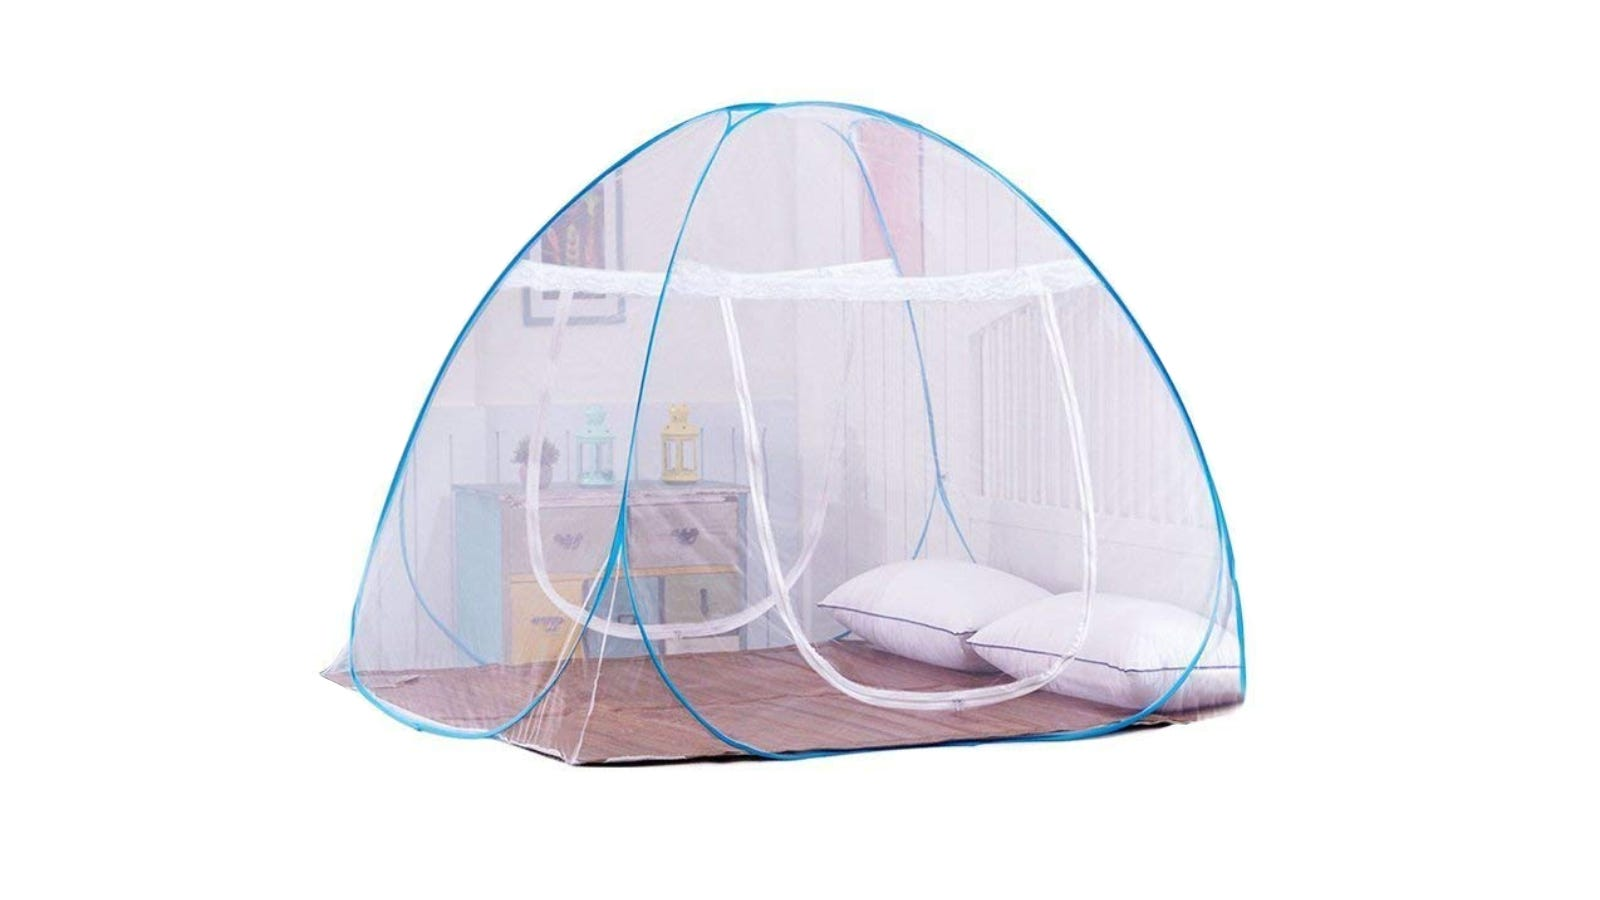 A mosquito net with white lace and blue seams sitting against a white background.